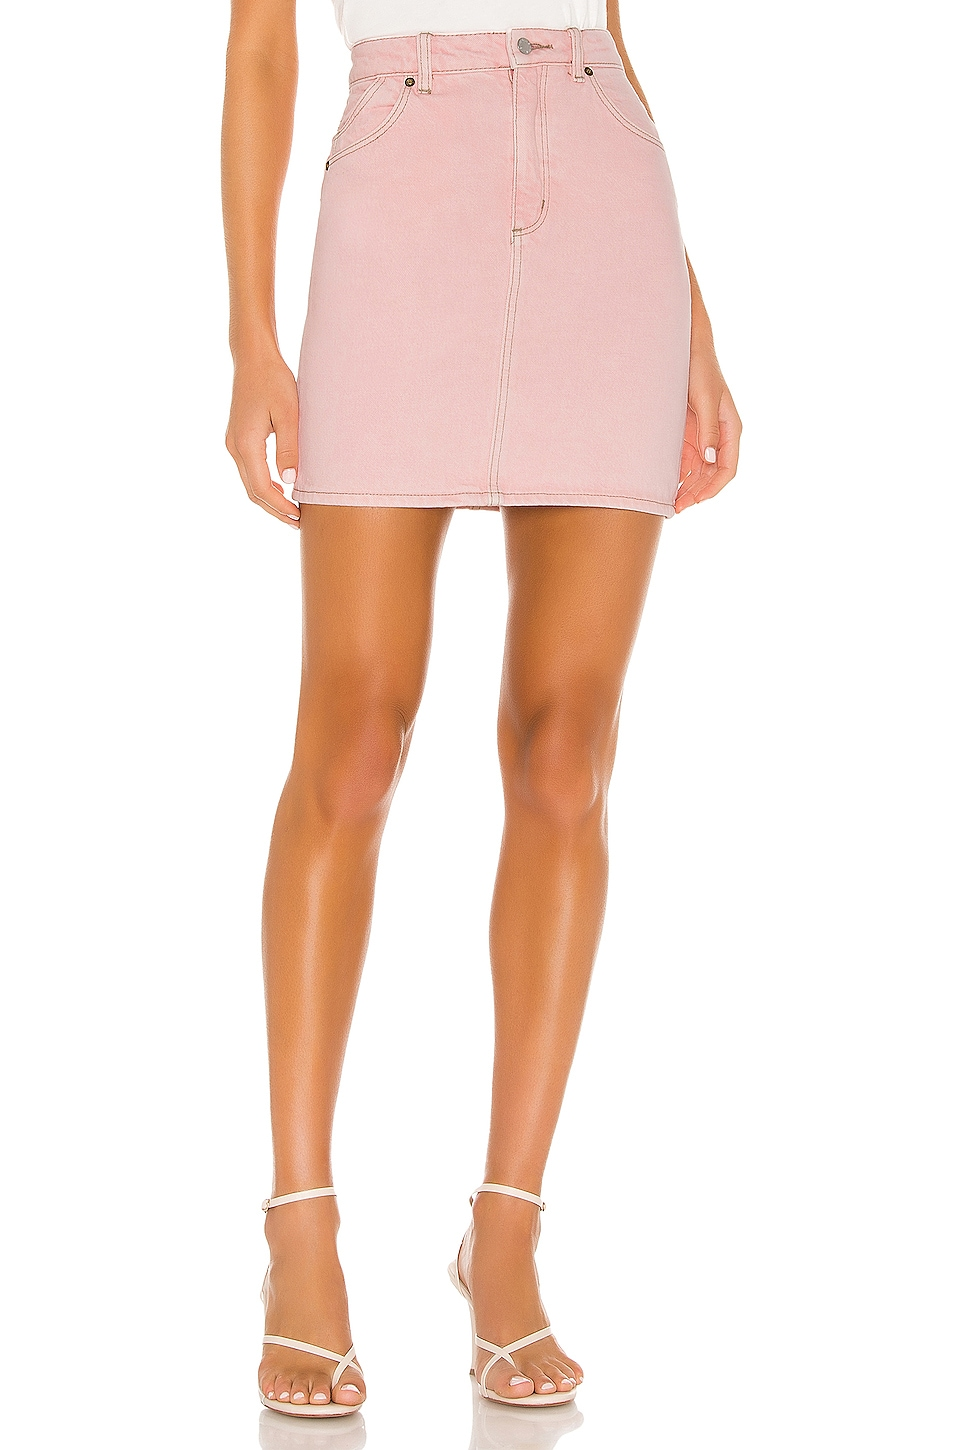 ROLLA'S High Mini Skirt in 80's Pink